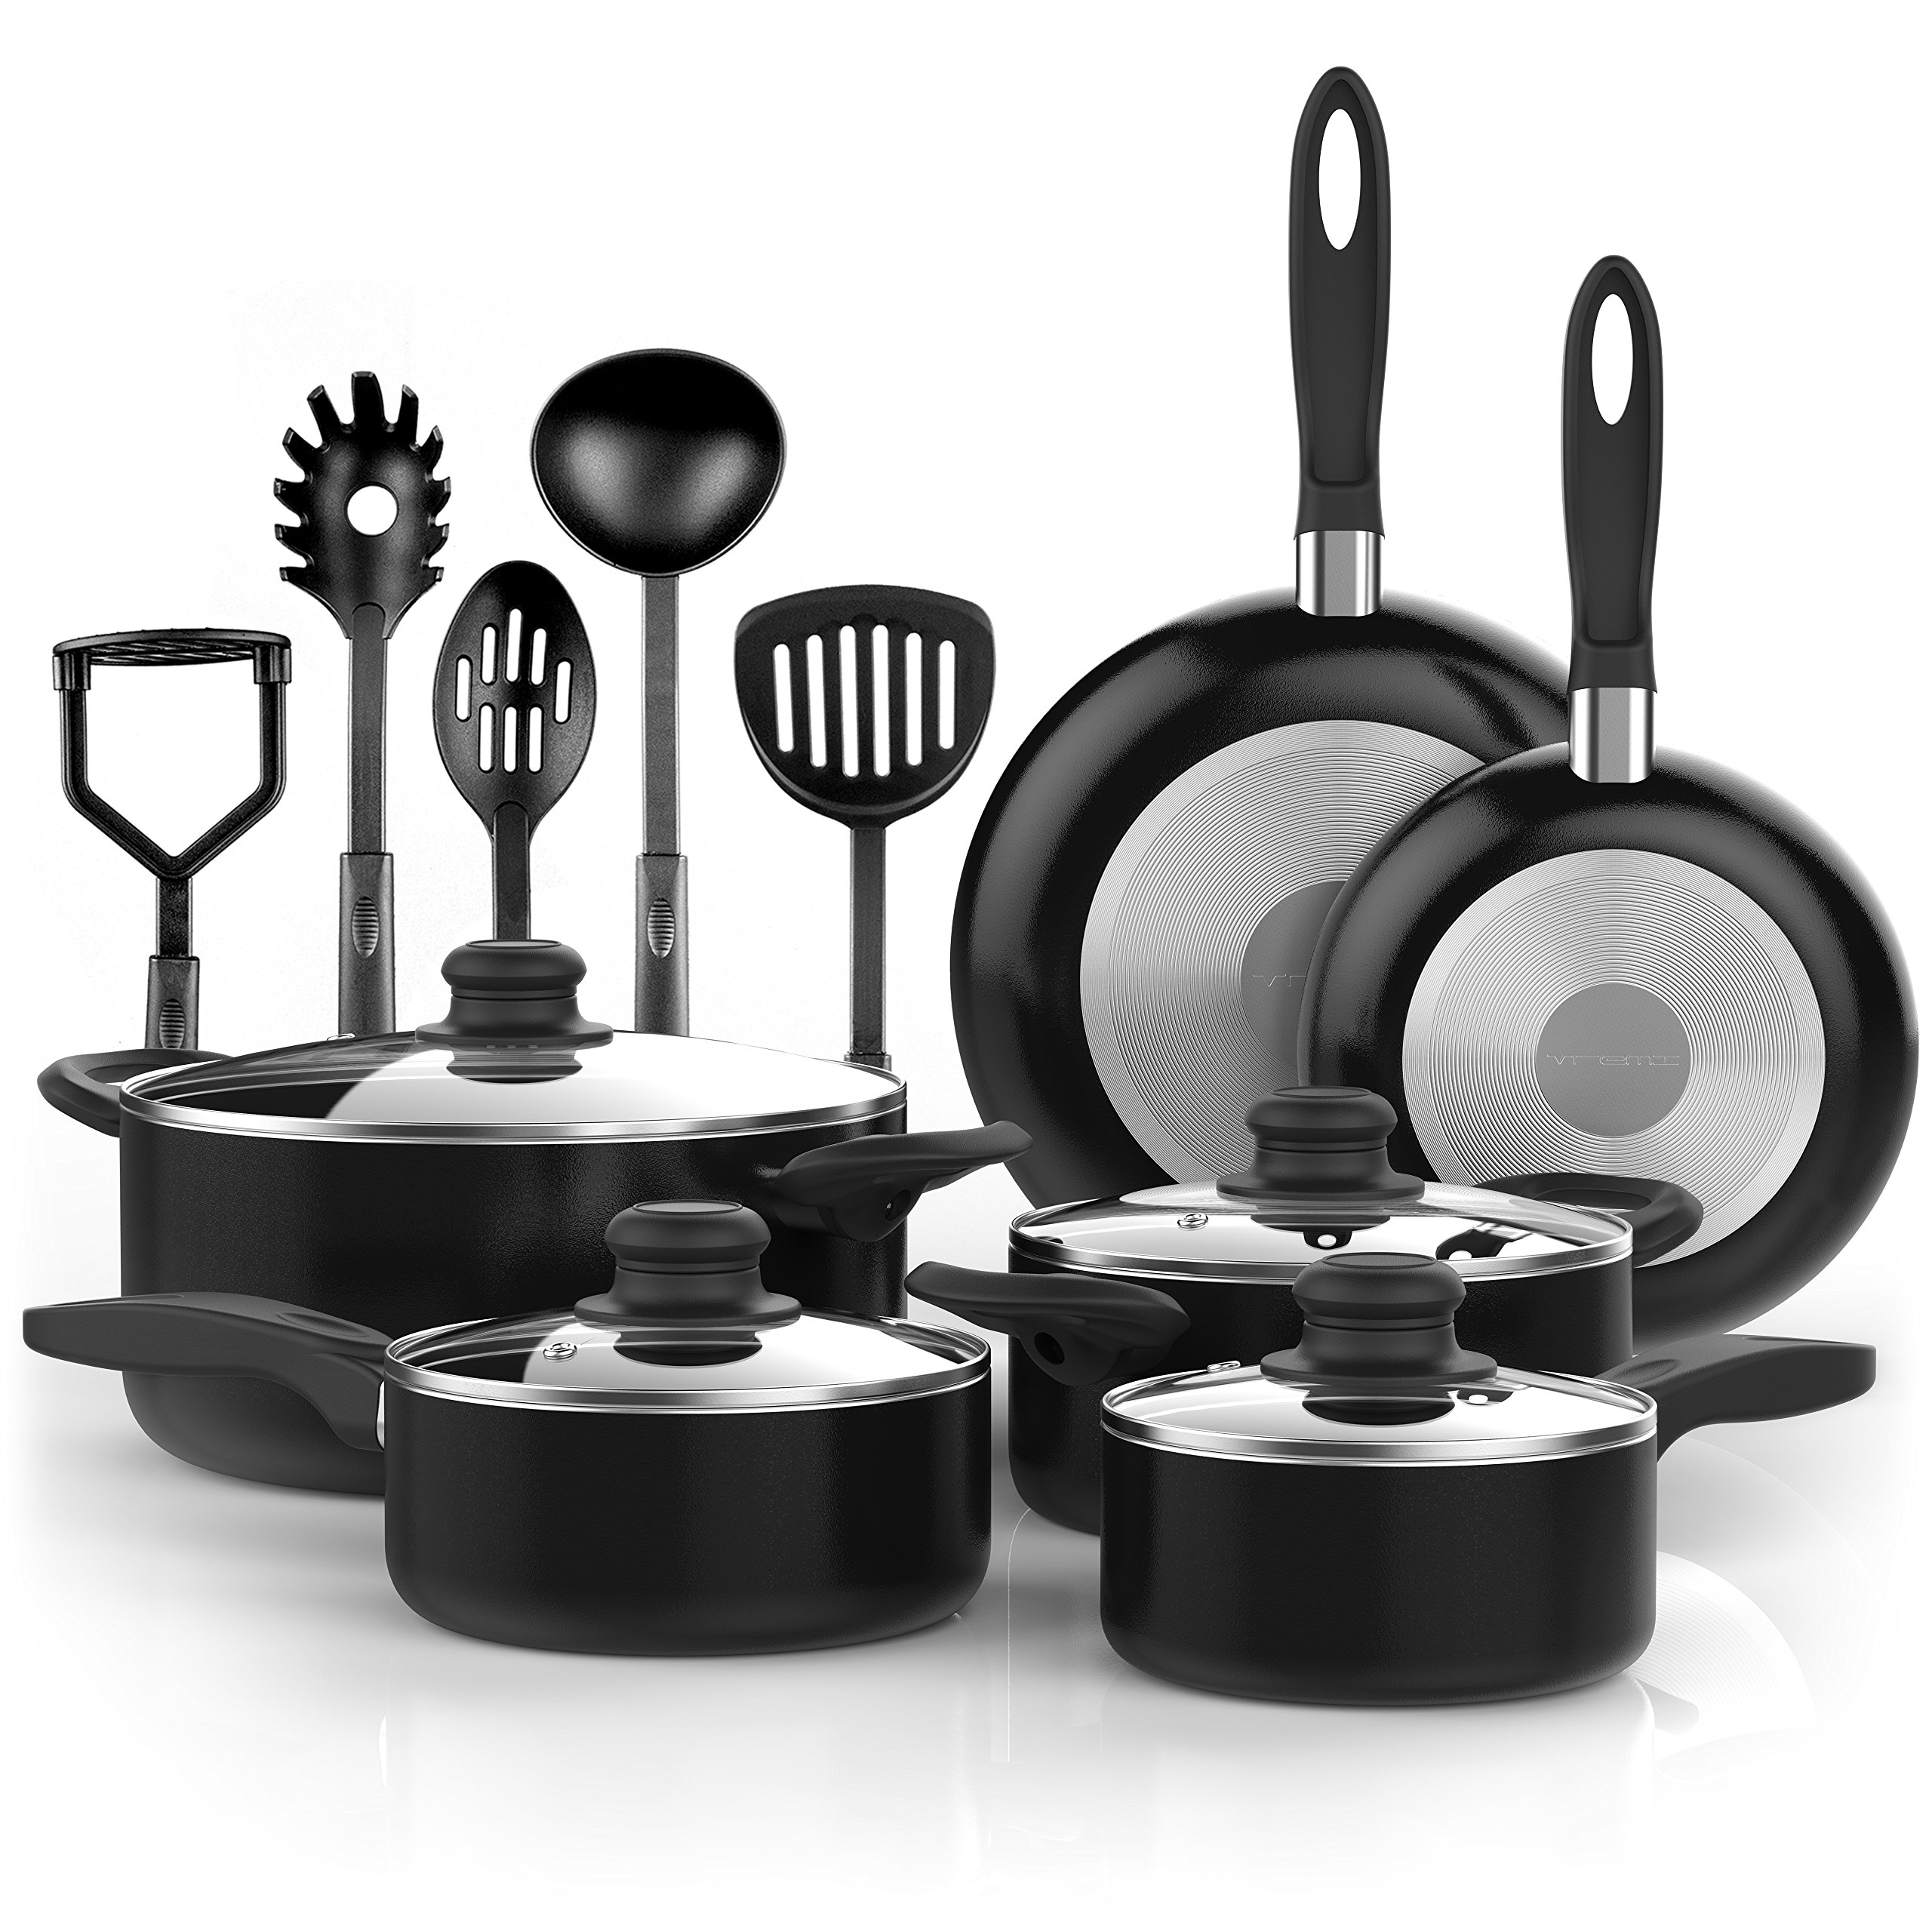 Details About Vremi Cookware Set Nonstick Black Kitchen Pots Pans Lids Teal Non Stick